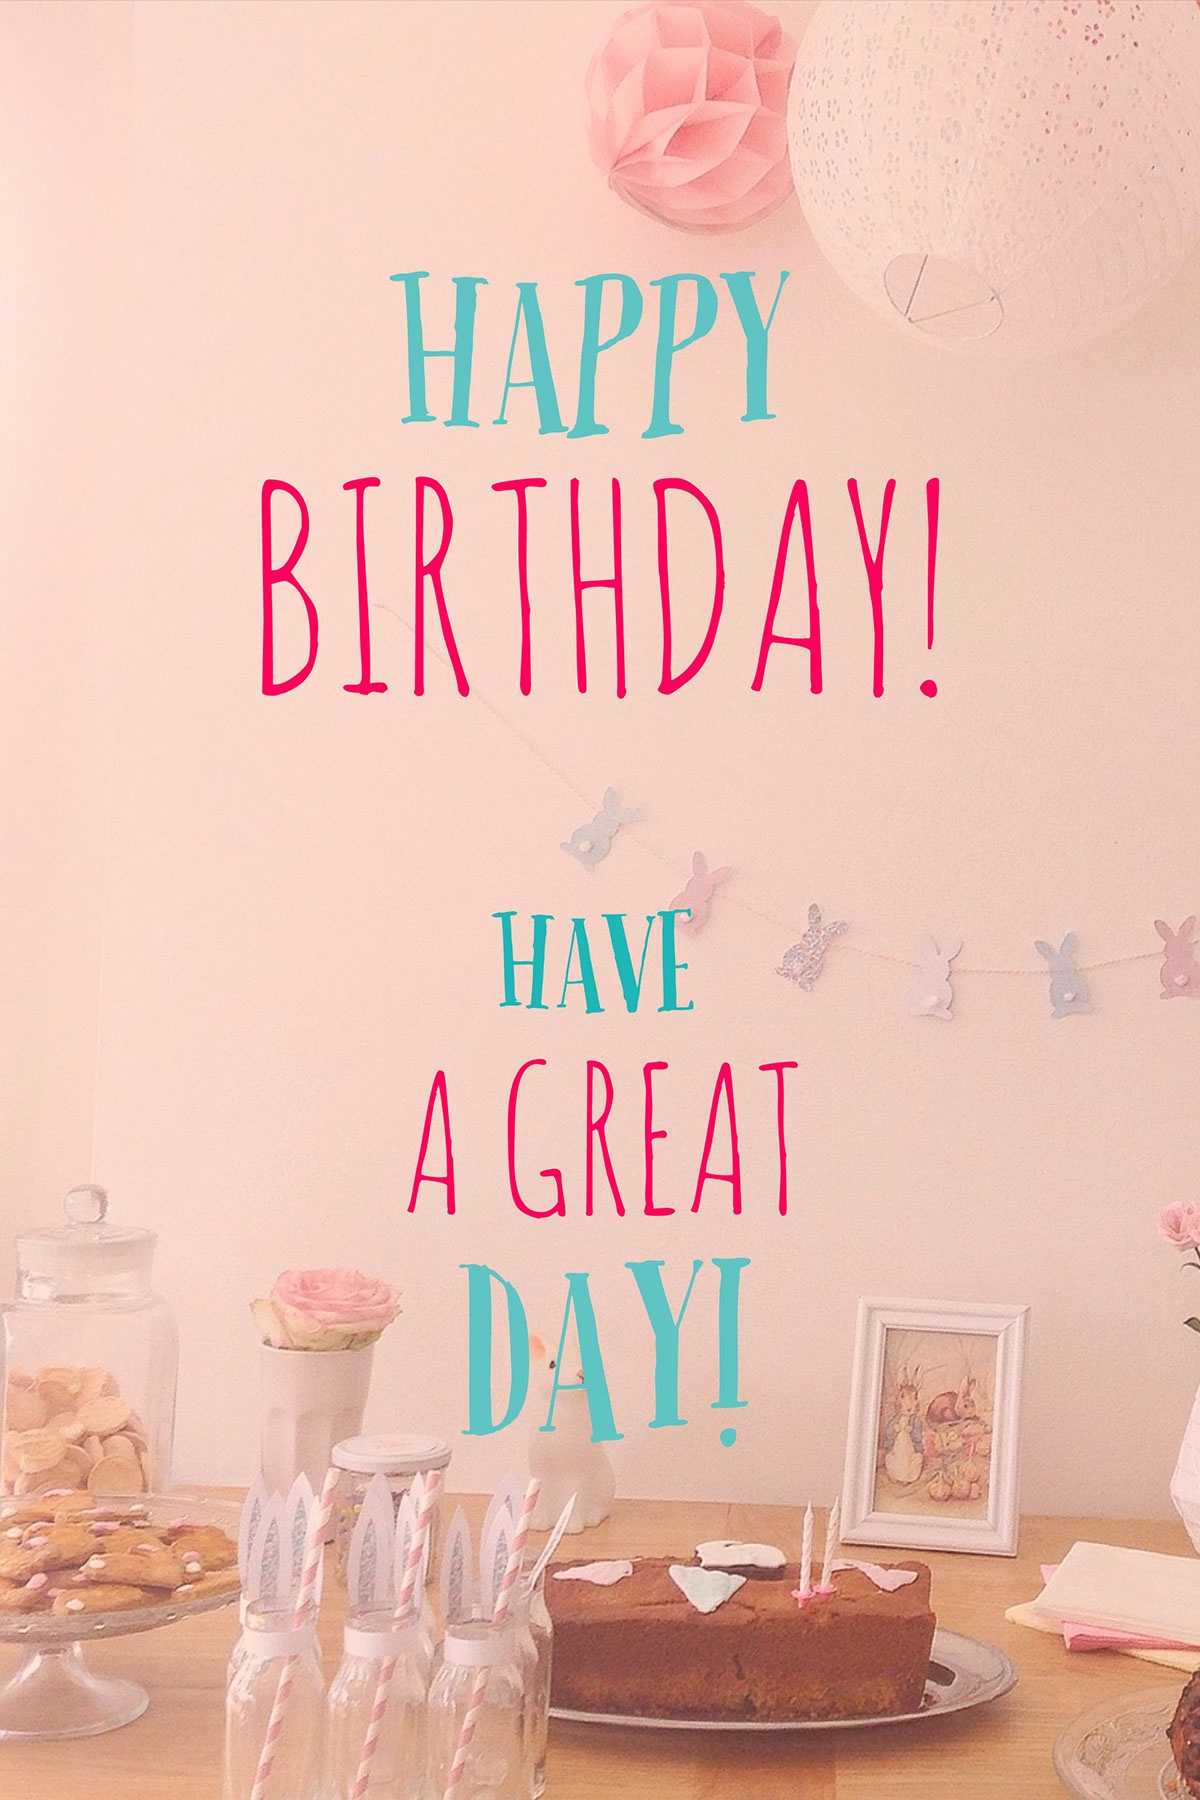 card making websites for free birthday ; card-making-websites-for-free-birthday-fresh-free-line-card-maker-create-custom-greeting-cards-of-card-making-websites-for-free-birthday